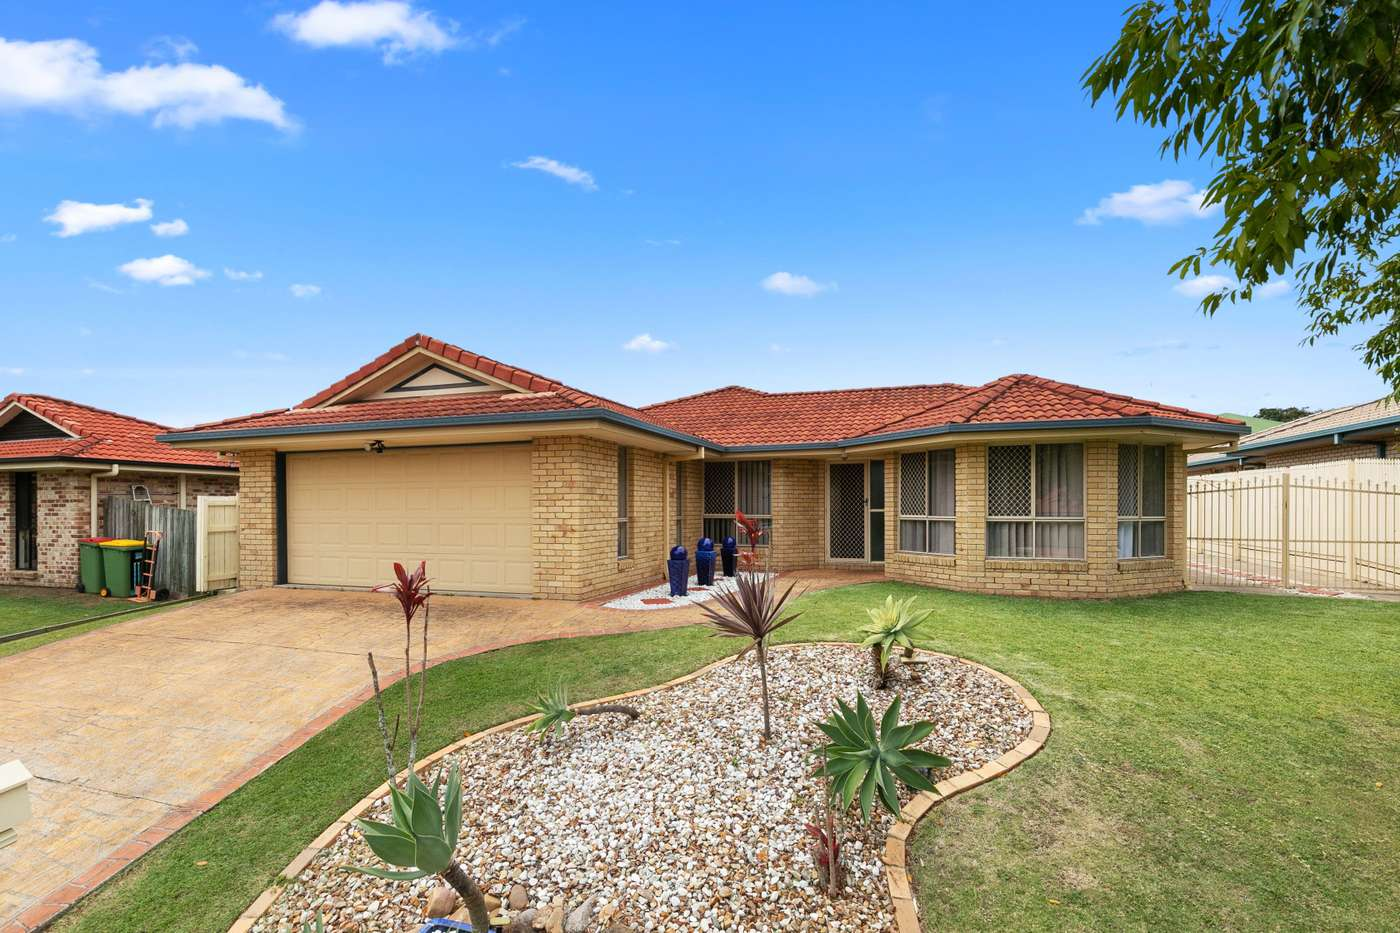 Main view of Homely house listing, 18 Cumulus Place, Birkdale, QLD 4159